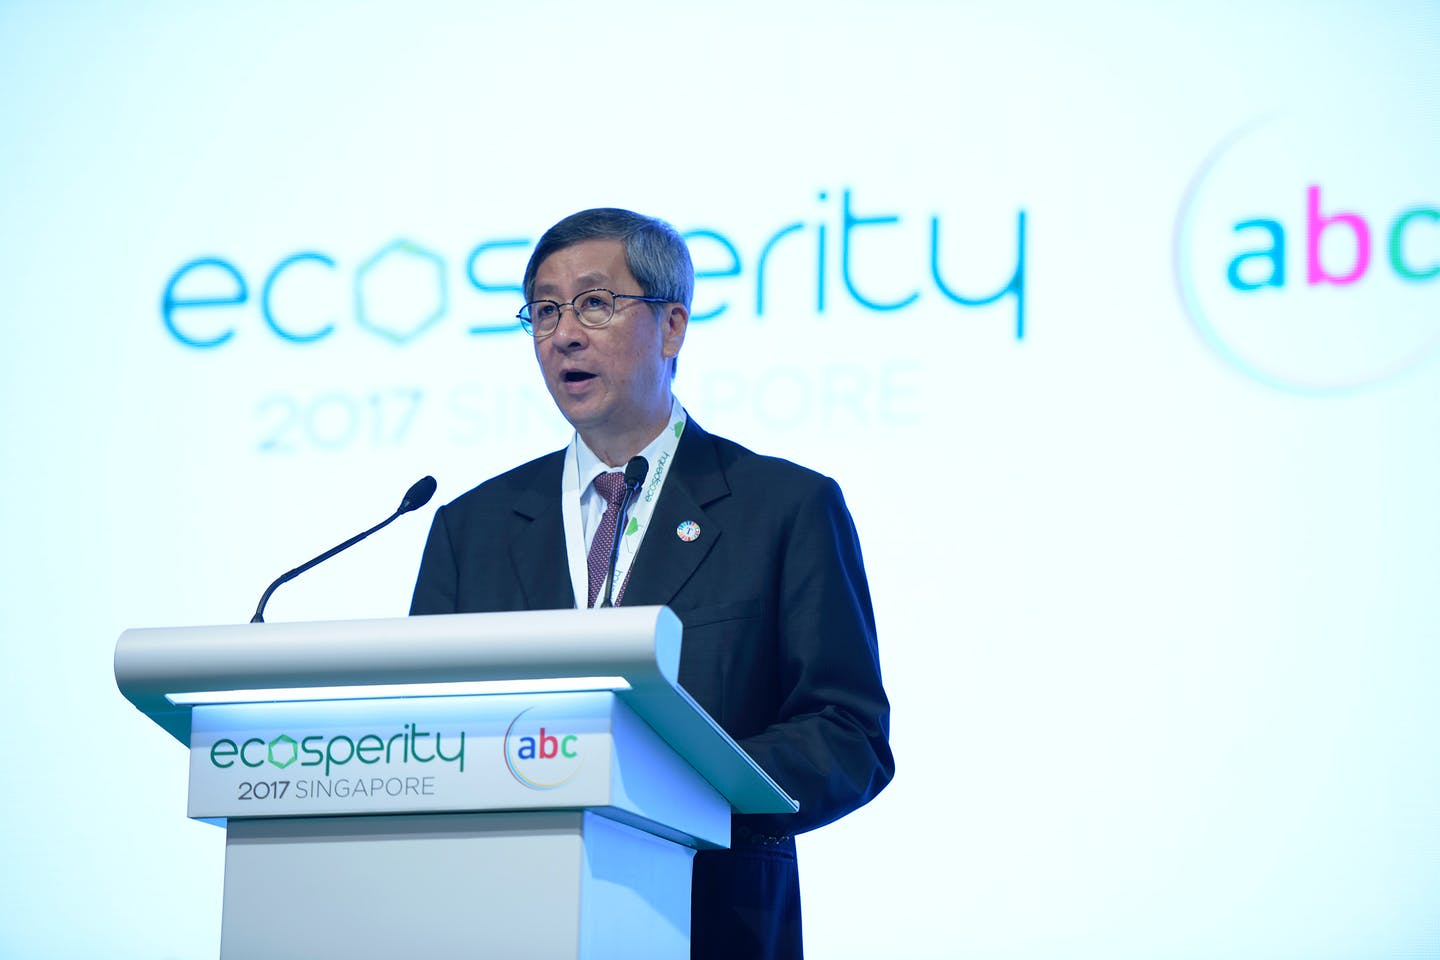 """Temasek's chairman, Lim Boon Heng: """"Companies are starting to place sustainability at the core of their business operations."""" Image: Temasek"""